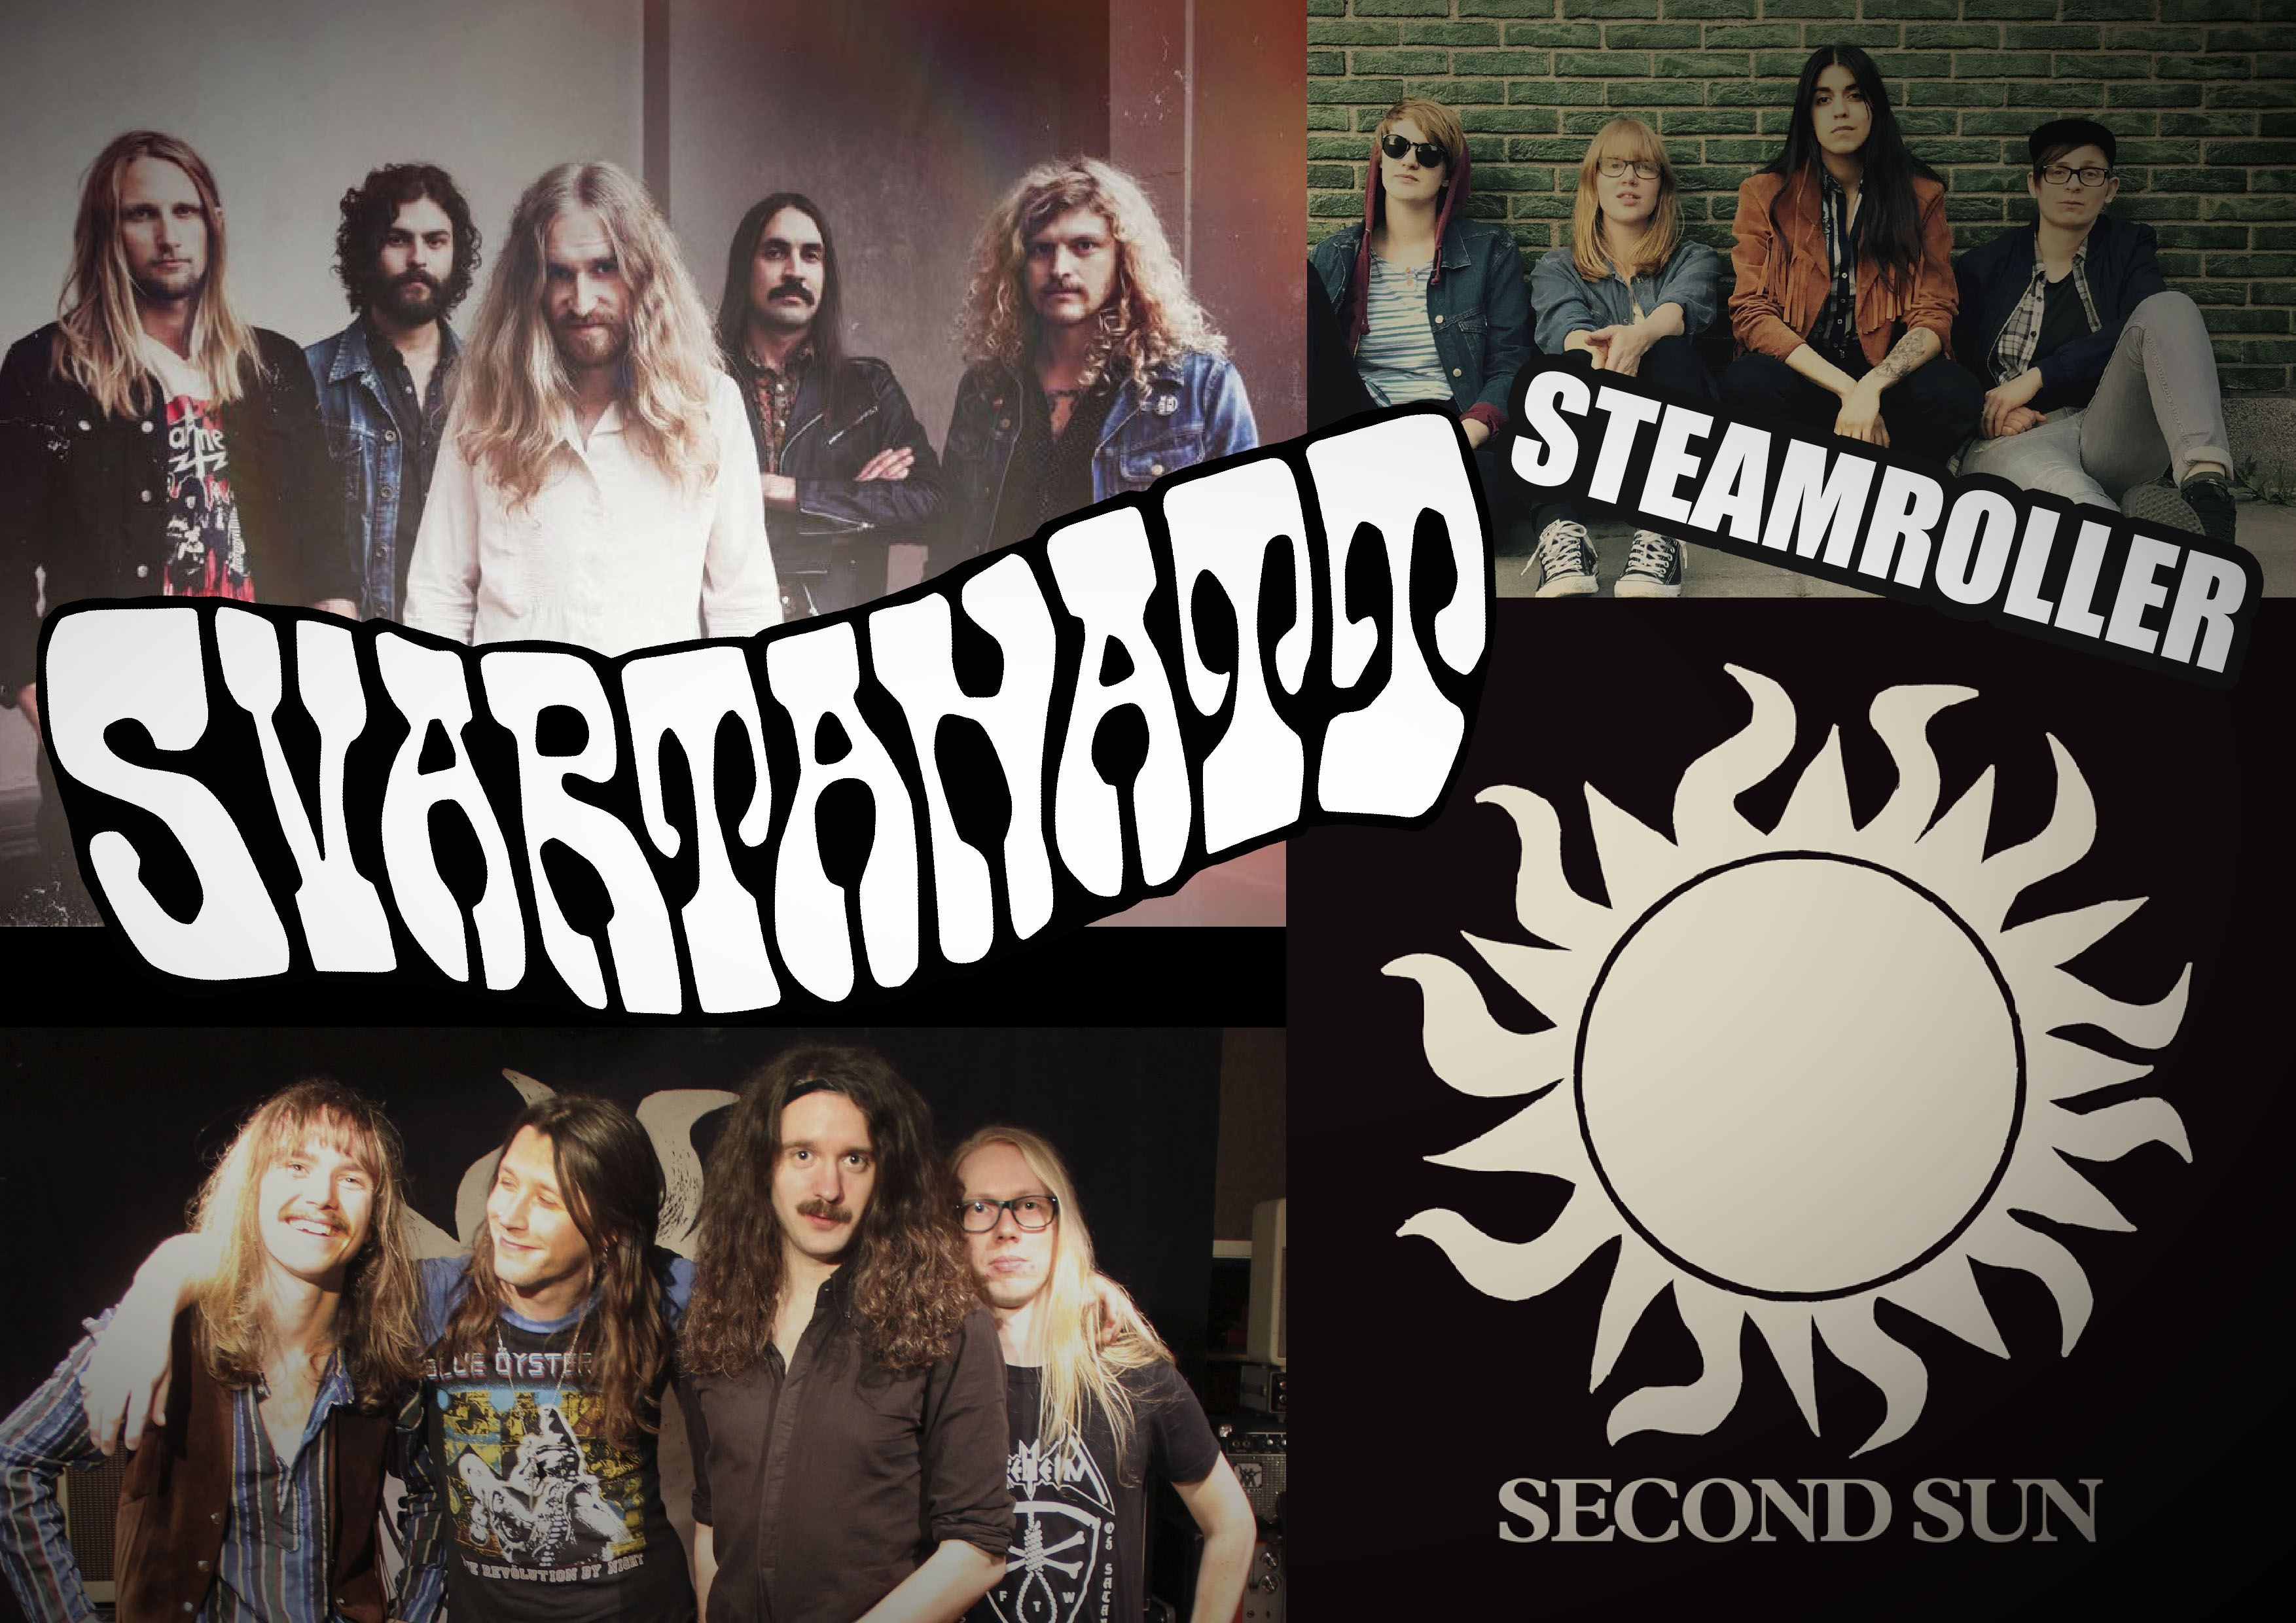 Svartanatt, Second Sun och Steamroller.